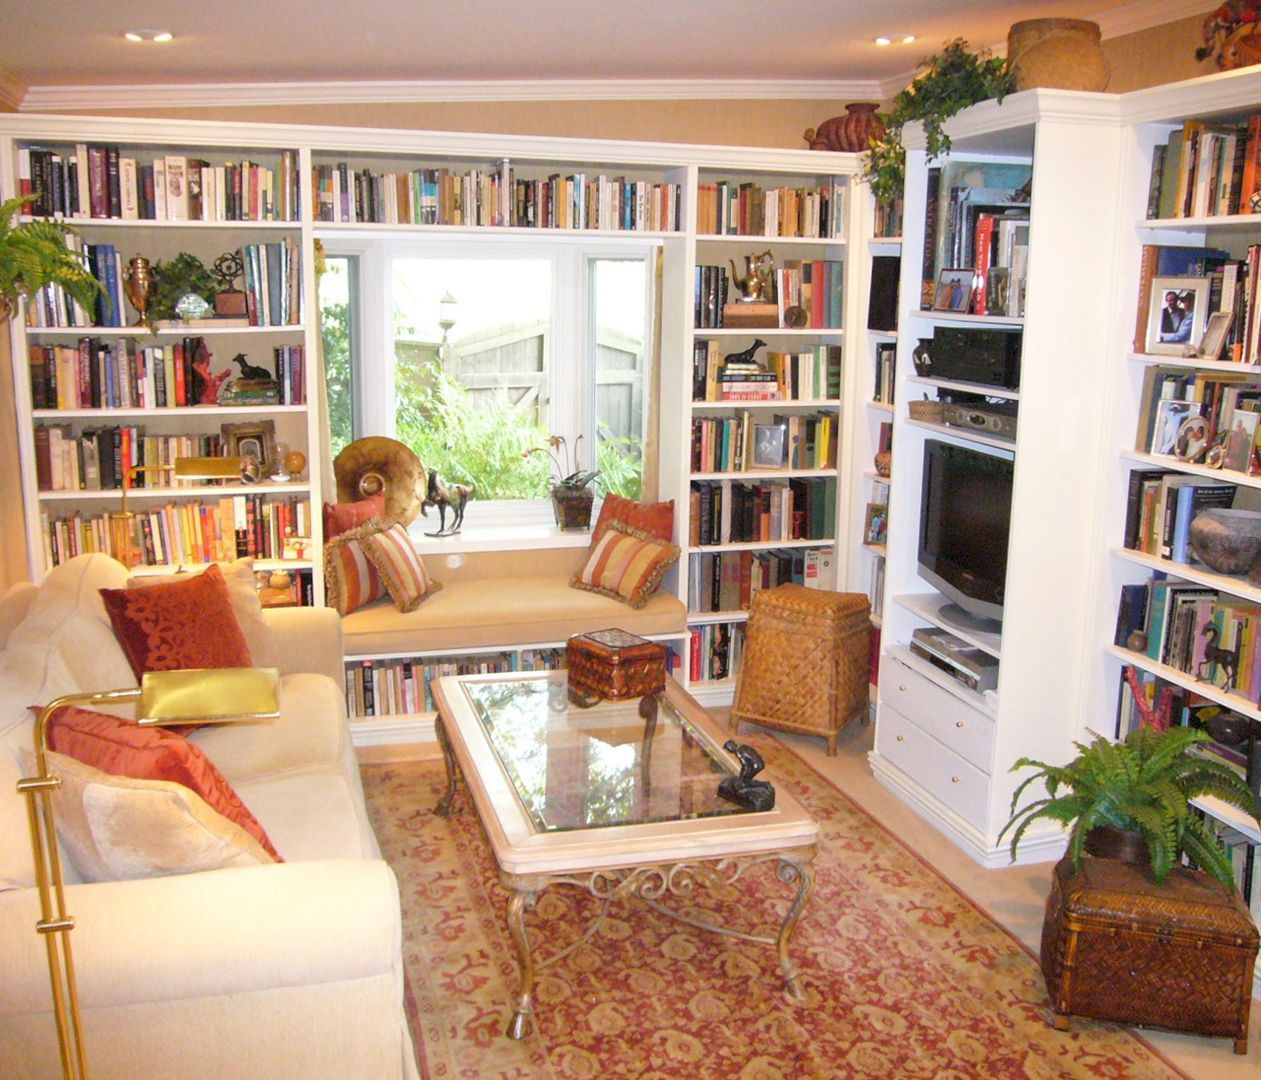 Heimbibliothek 10 Timeless Home Decorating Trends That Never Go Out Of